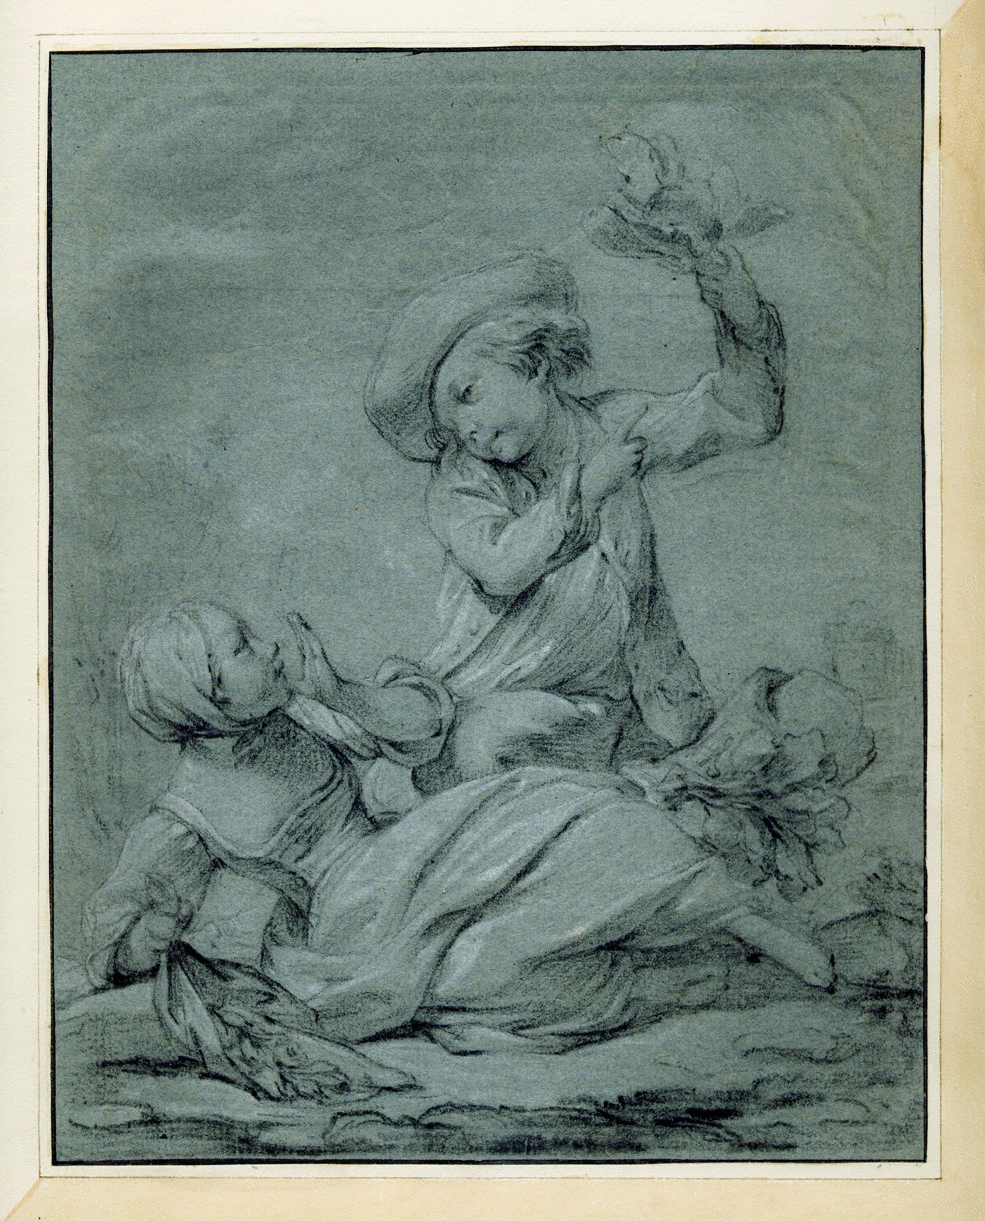 A drawing of La feuille à l'envers by Pierre-Etienne Falconet